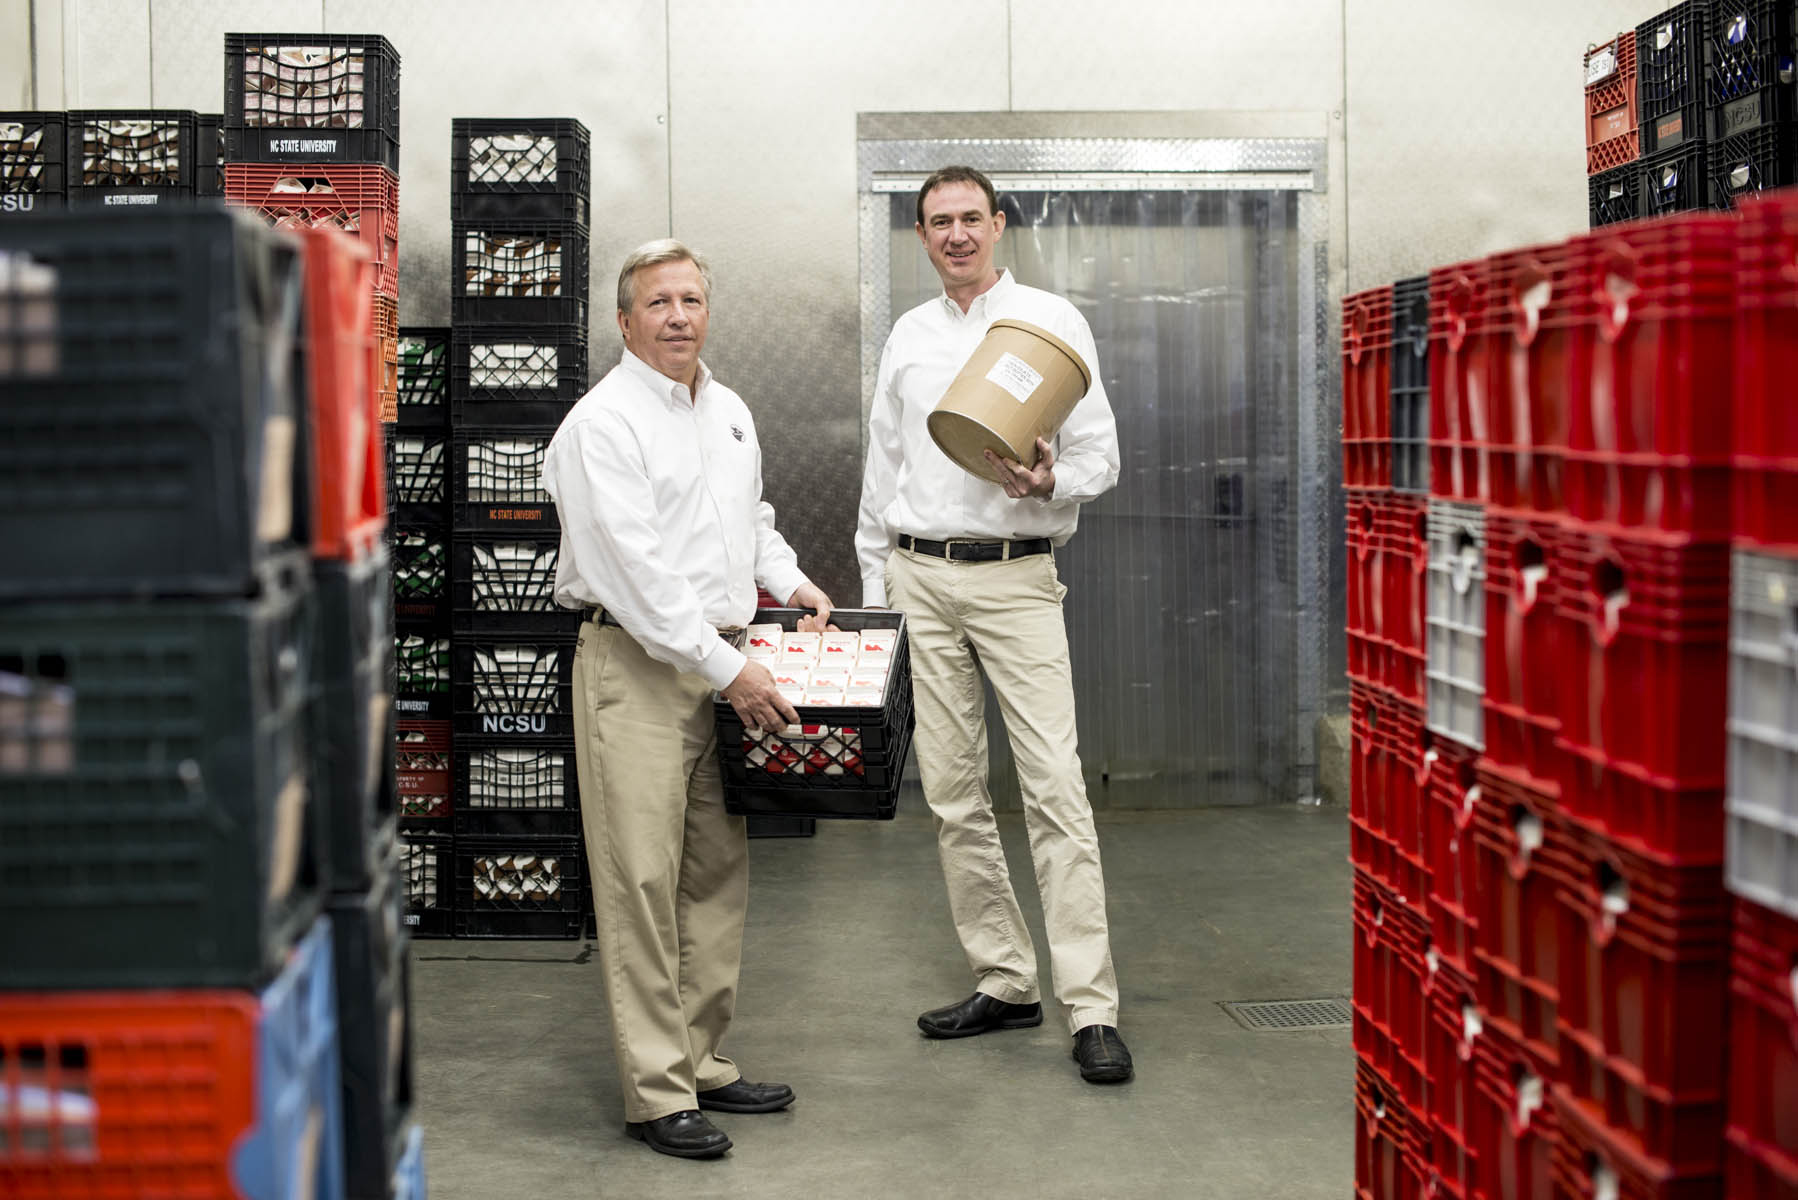 After the milk is collected and processed, Gary Cartwright and Carl Hollifield oversee its sale on campus.